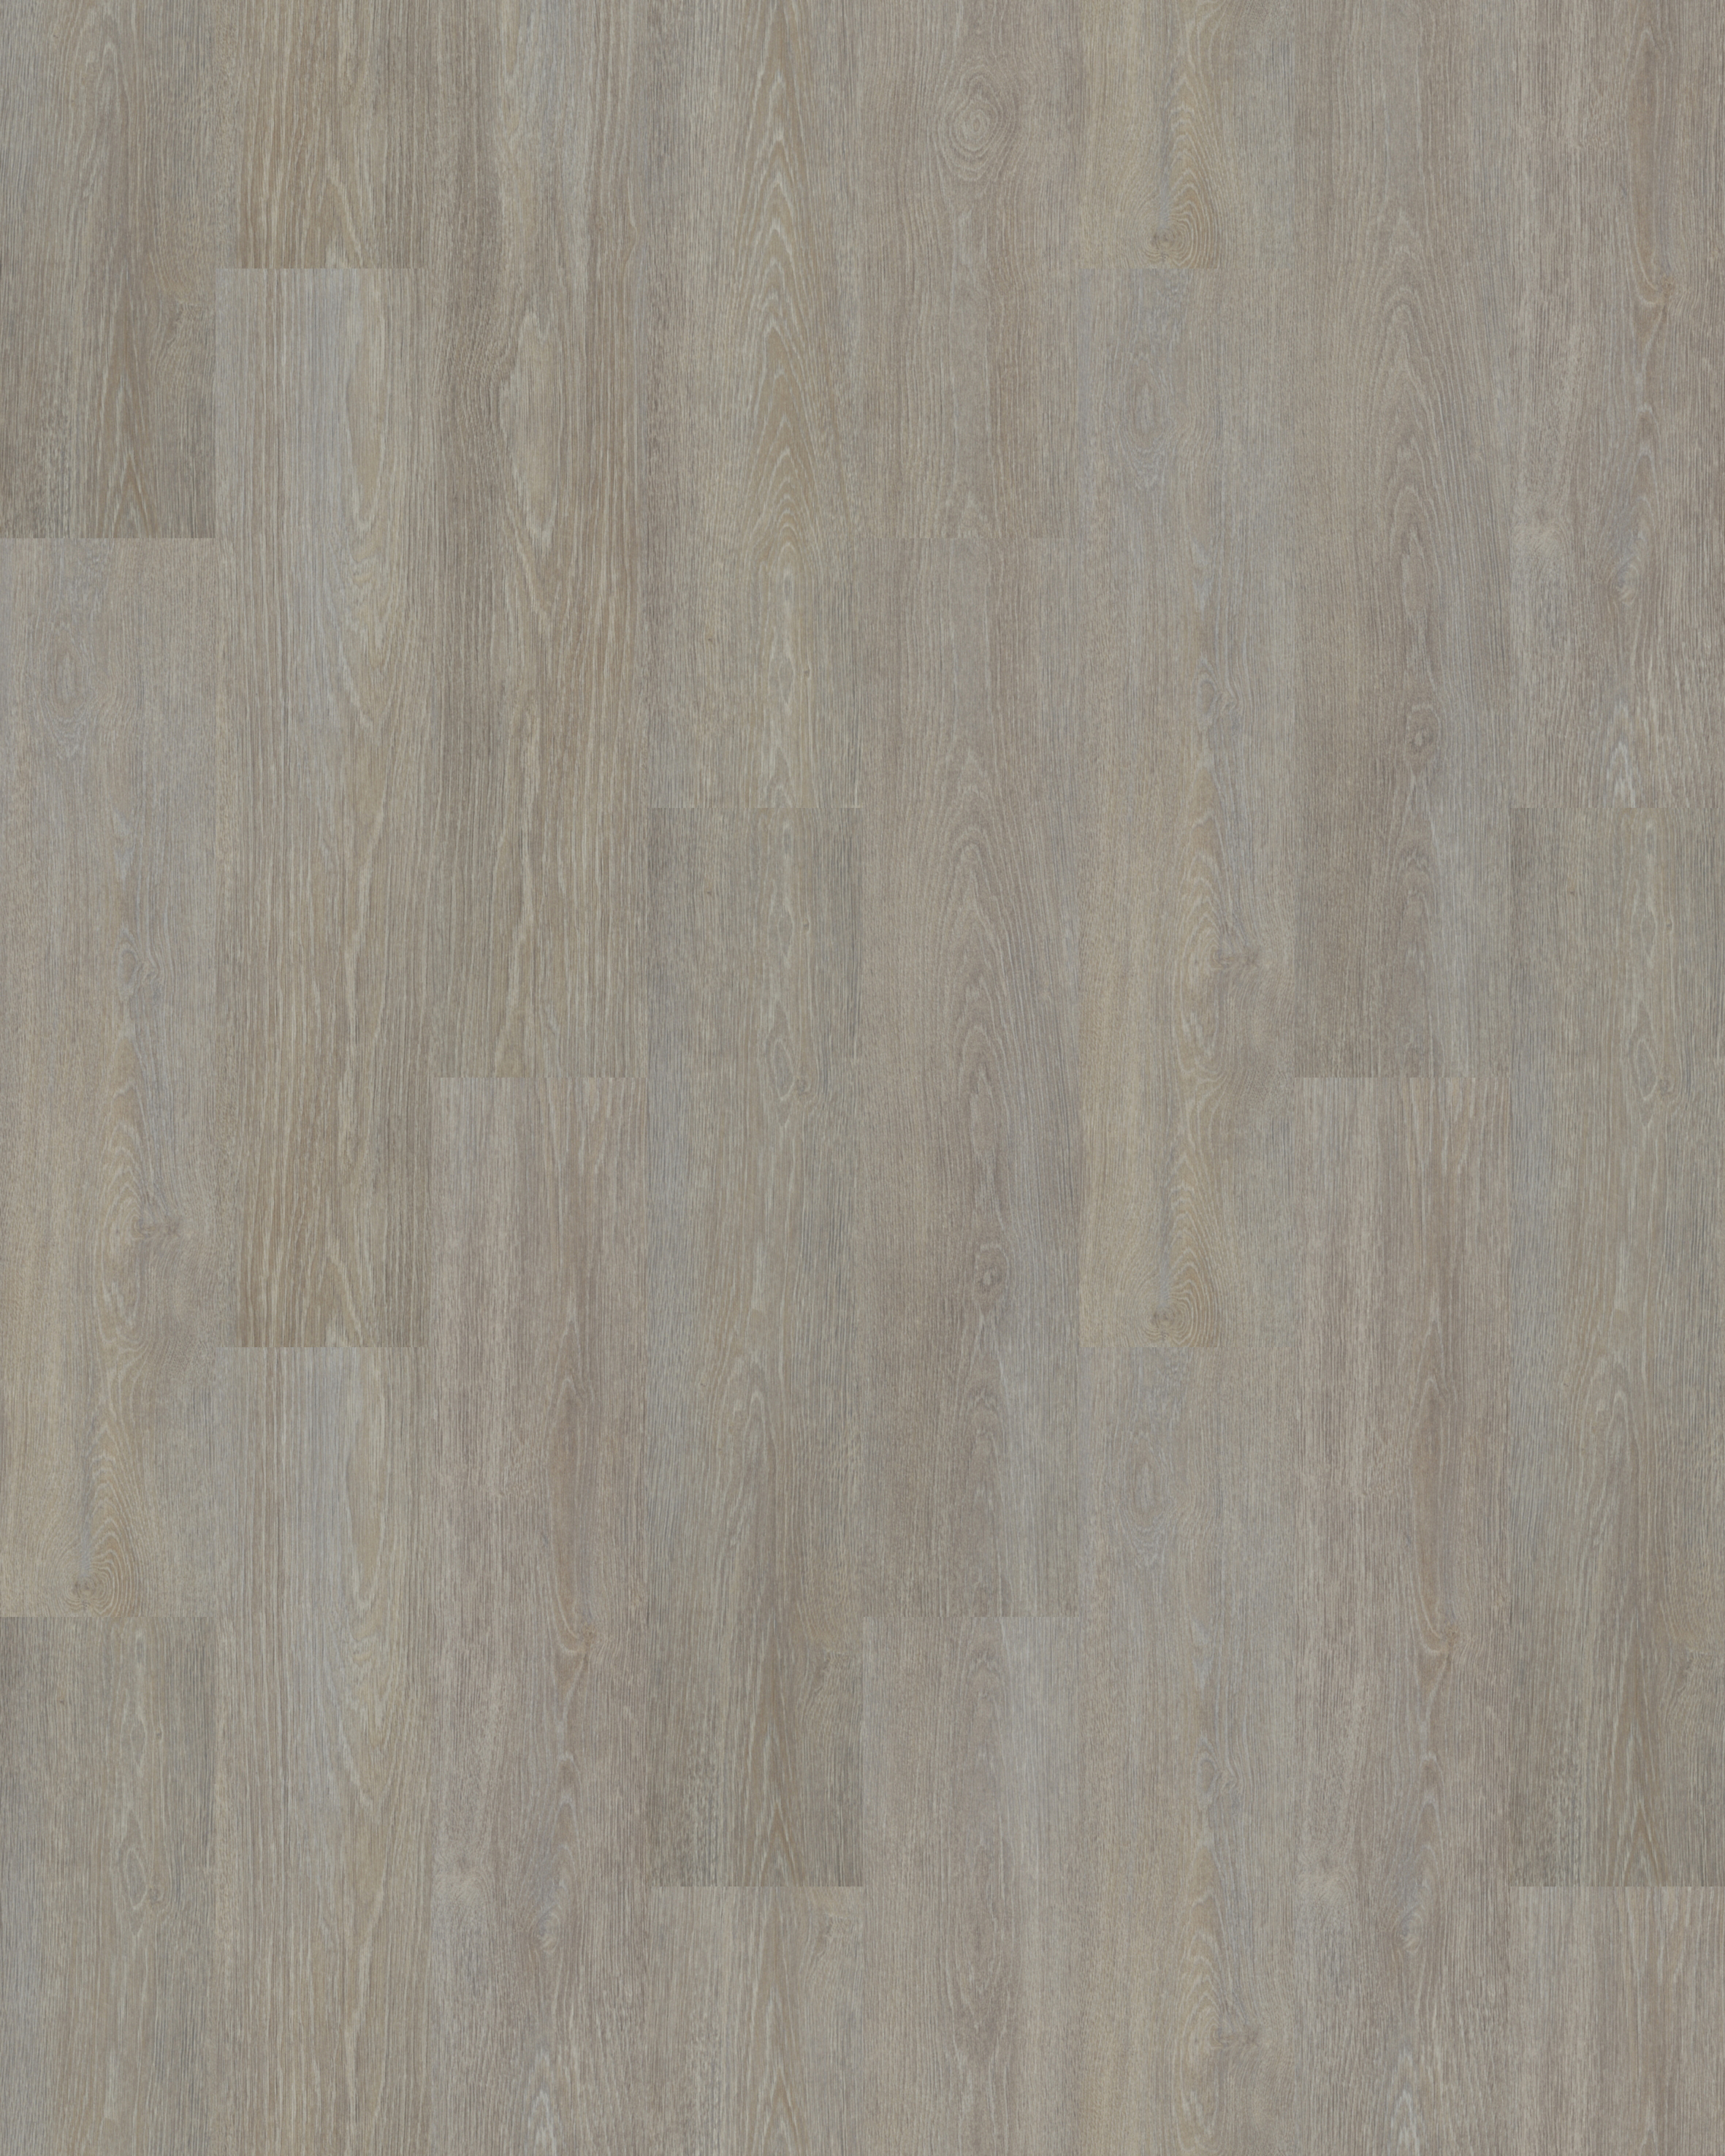 Allura flex wood loose lay tiles forbo flooring systems enlarge cad download dailygadgetfo Images